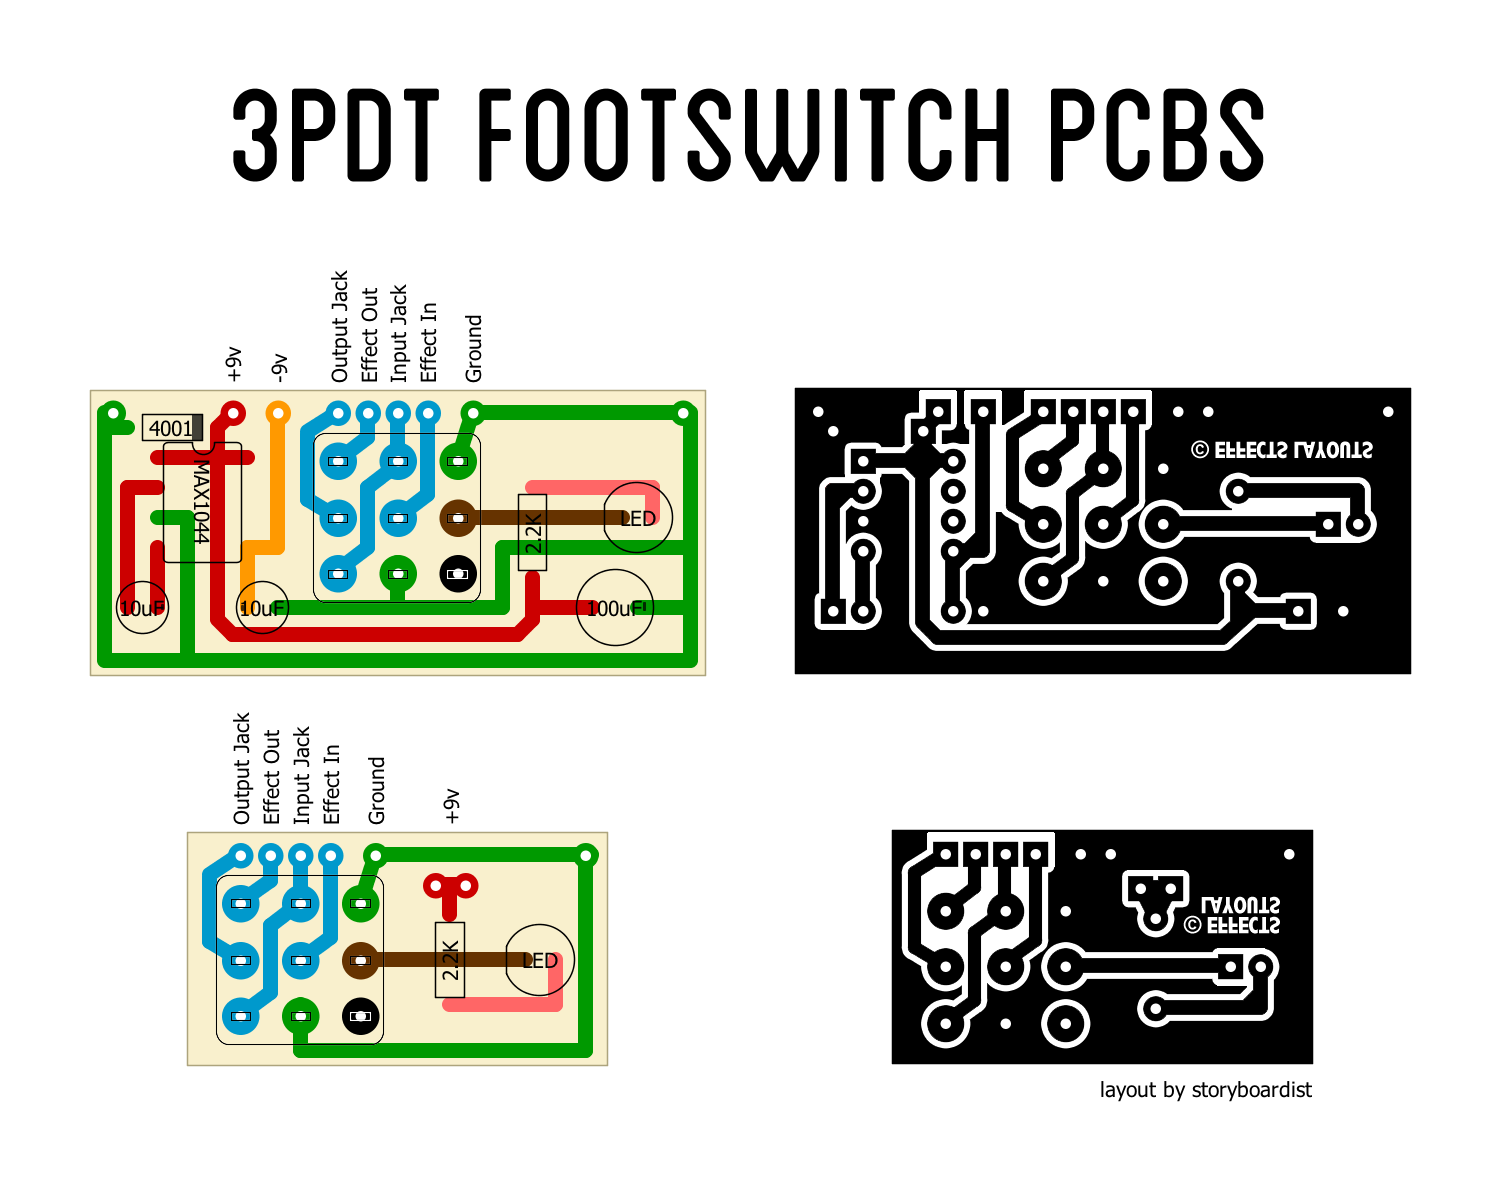 Dpdt Footswitch Wiring Diagram 30 Images Pedal 6e4c1a71ead13435ef1f6062c137e425 3pdt Guitar Pcb Schematics Google Search Switch Schematic At Cita